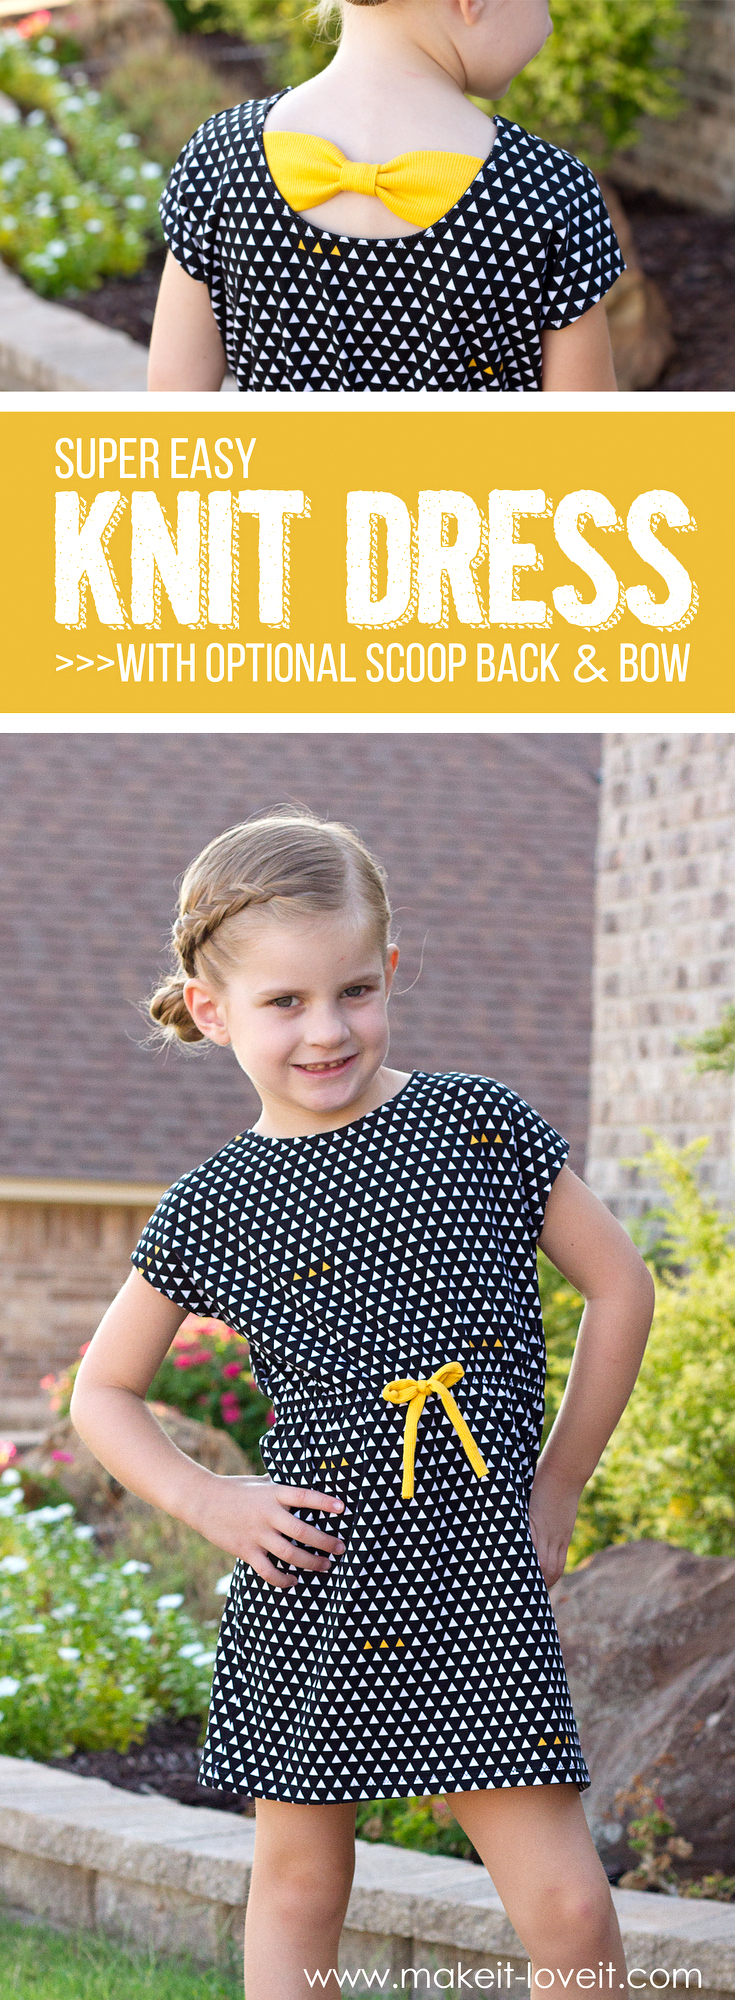 Super Easy Knit Dress…with optional Scoop-Back and Bow!